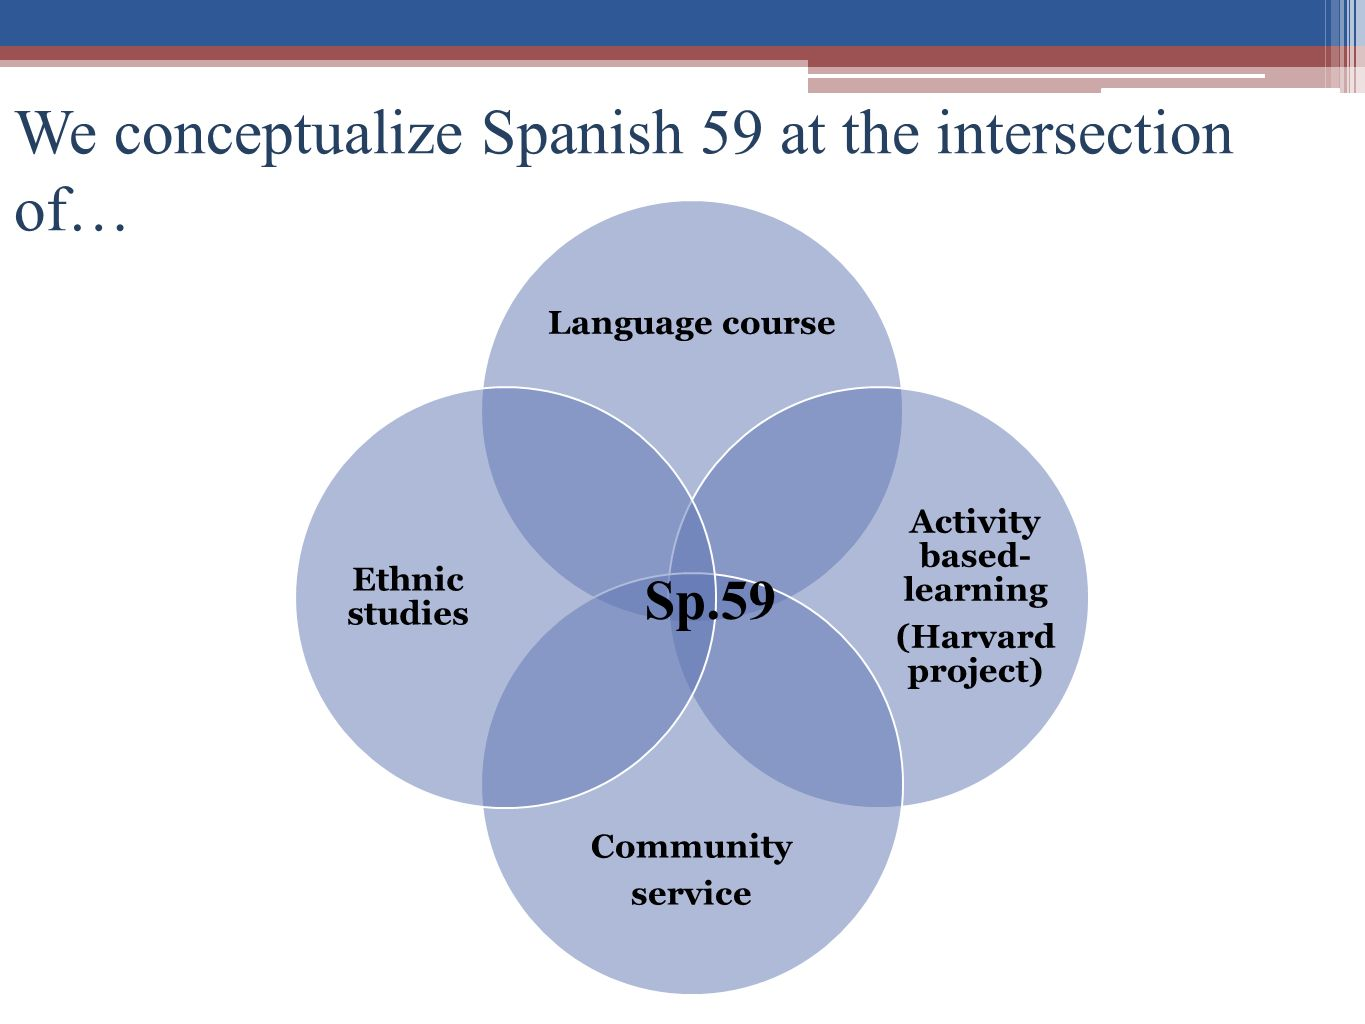 We conceptualize Spanish 59 at the intersection of… Language course Activity based- learning (Harvard project) Community service Ethnic studies Sp.59